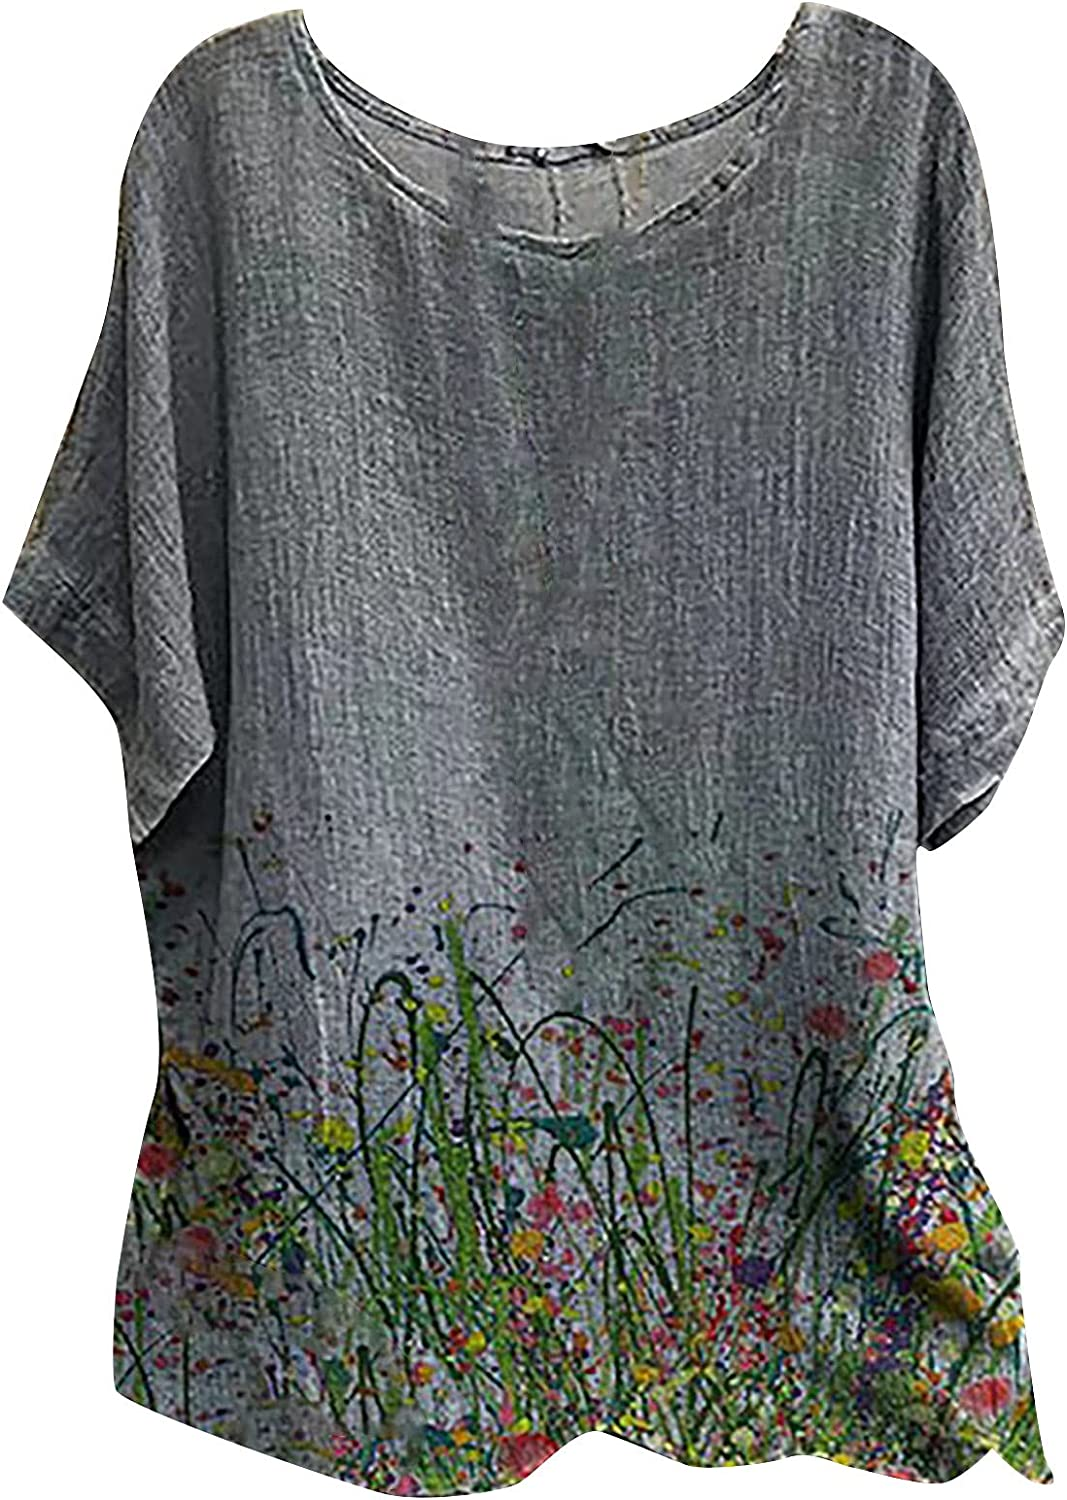 Plus Size Tops for Women Summer Flared Sleeve Floral Print Casual T-Shirt Blouse Oversized Cotton Tunics Gray